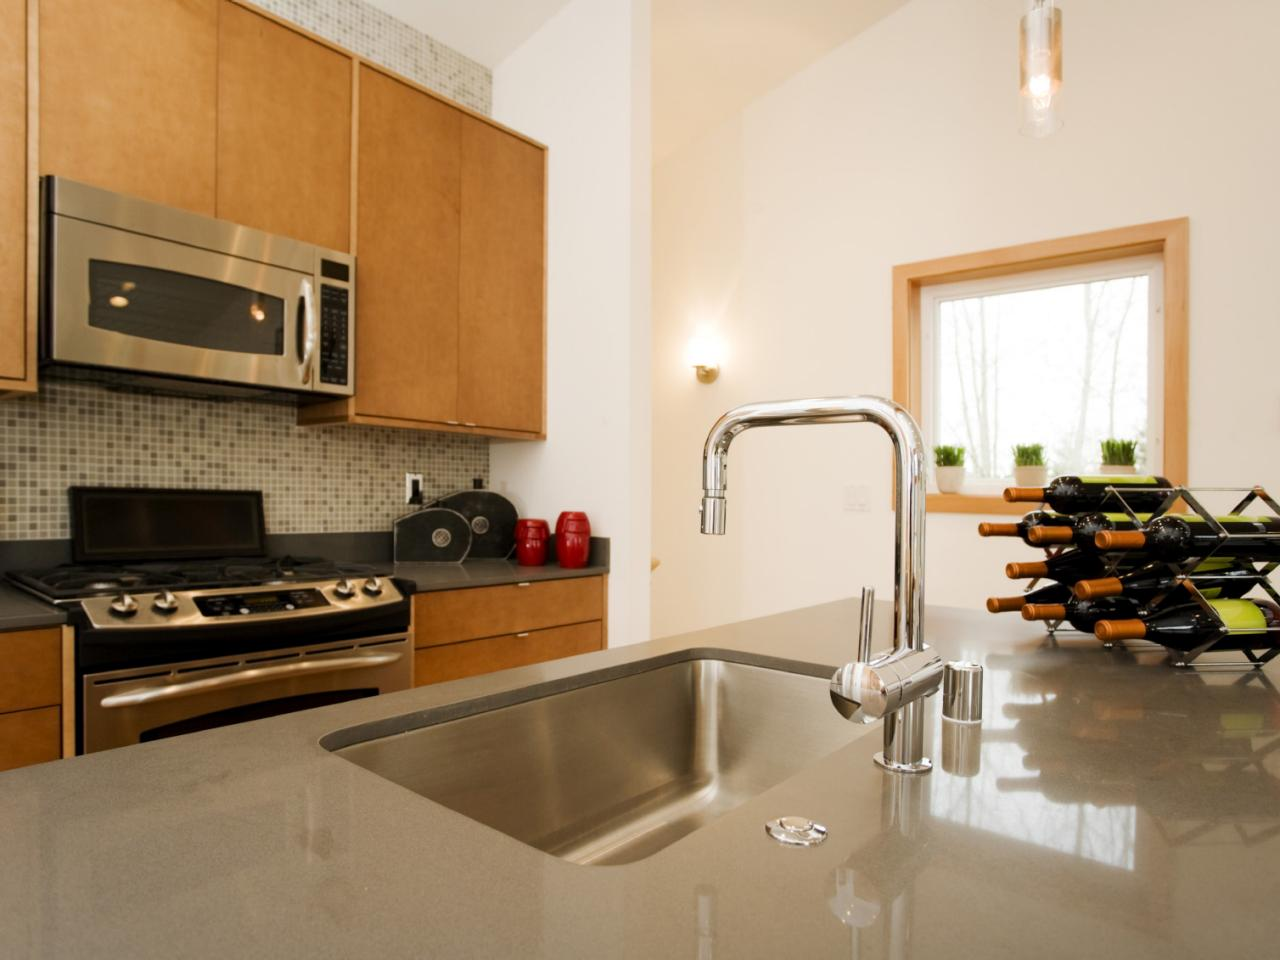 Kitchen Countertops Laminate : Laminate Kitchen Countertops: Pictures & Ideas From HGTV HGTV